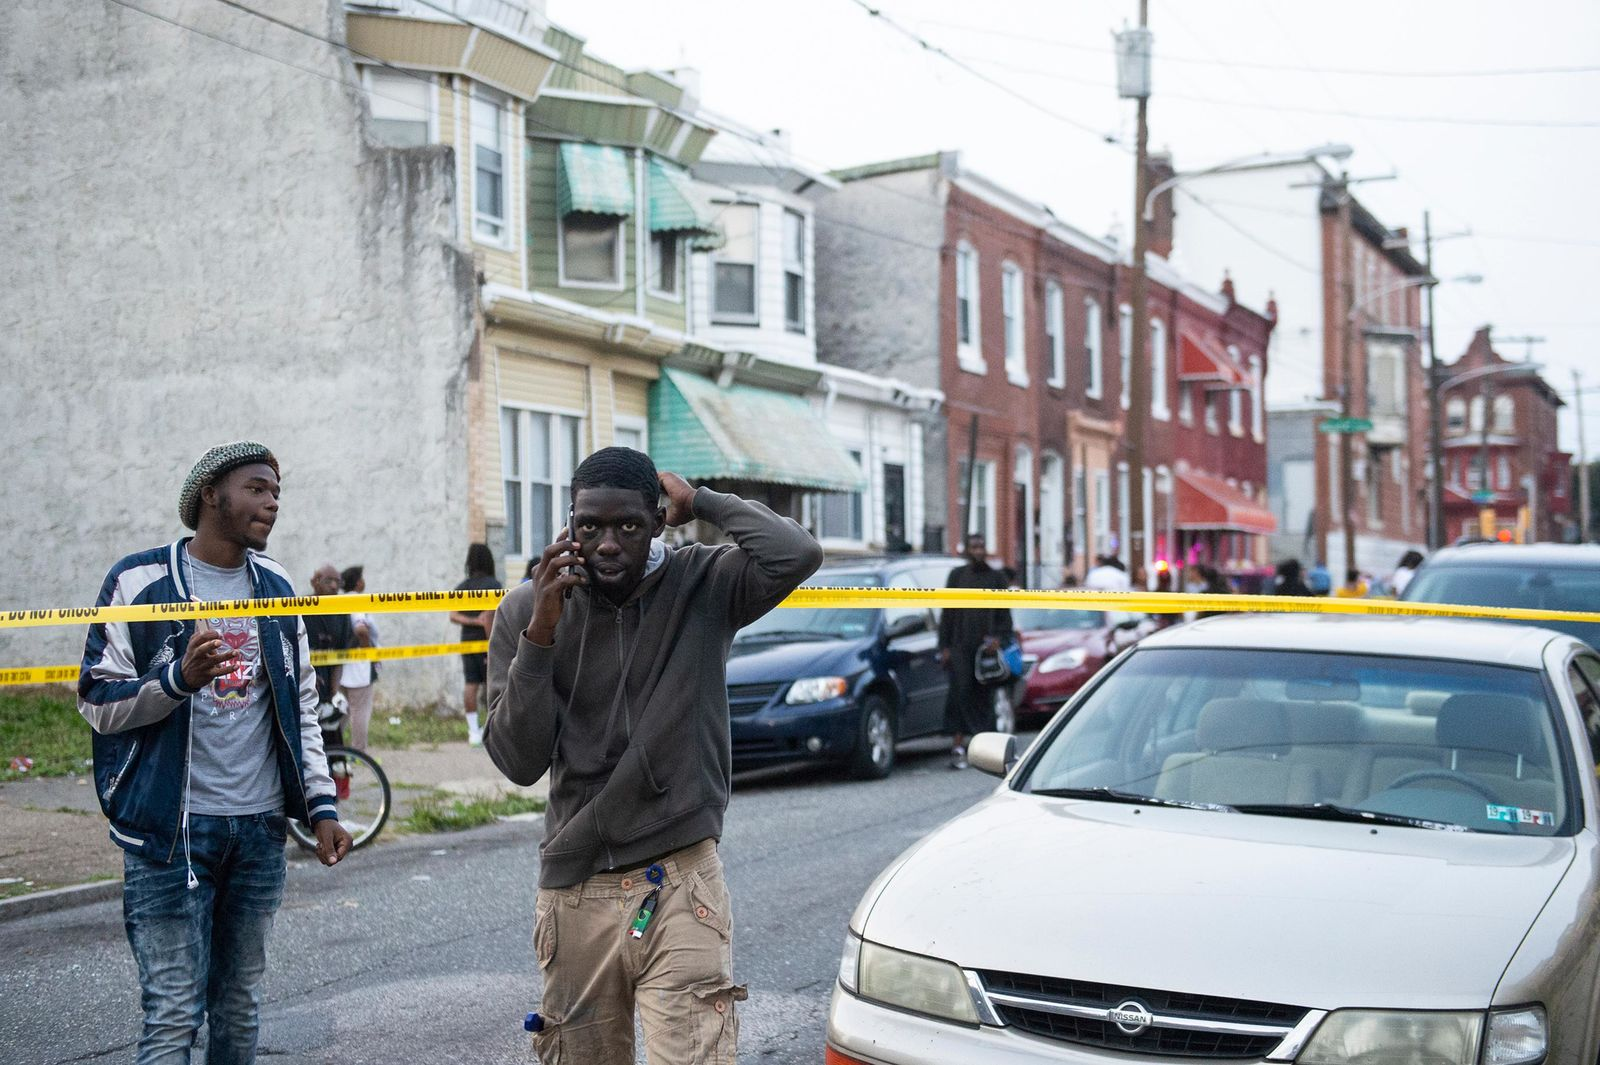 Onlookers gather as a shooting is investigated, Wednesday, Aug. 14, 2019, in Philadelphia. (Joe Lamberti/Camden Courier-Post via AP)